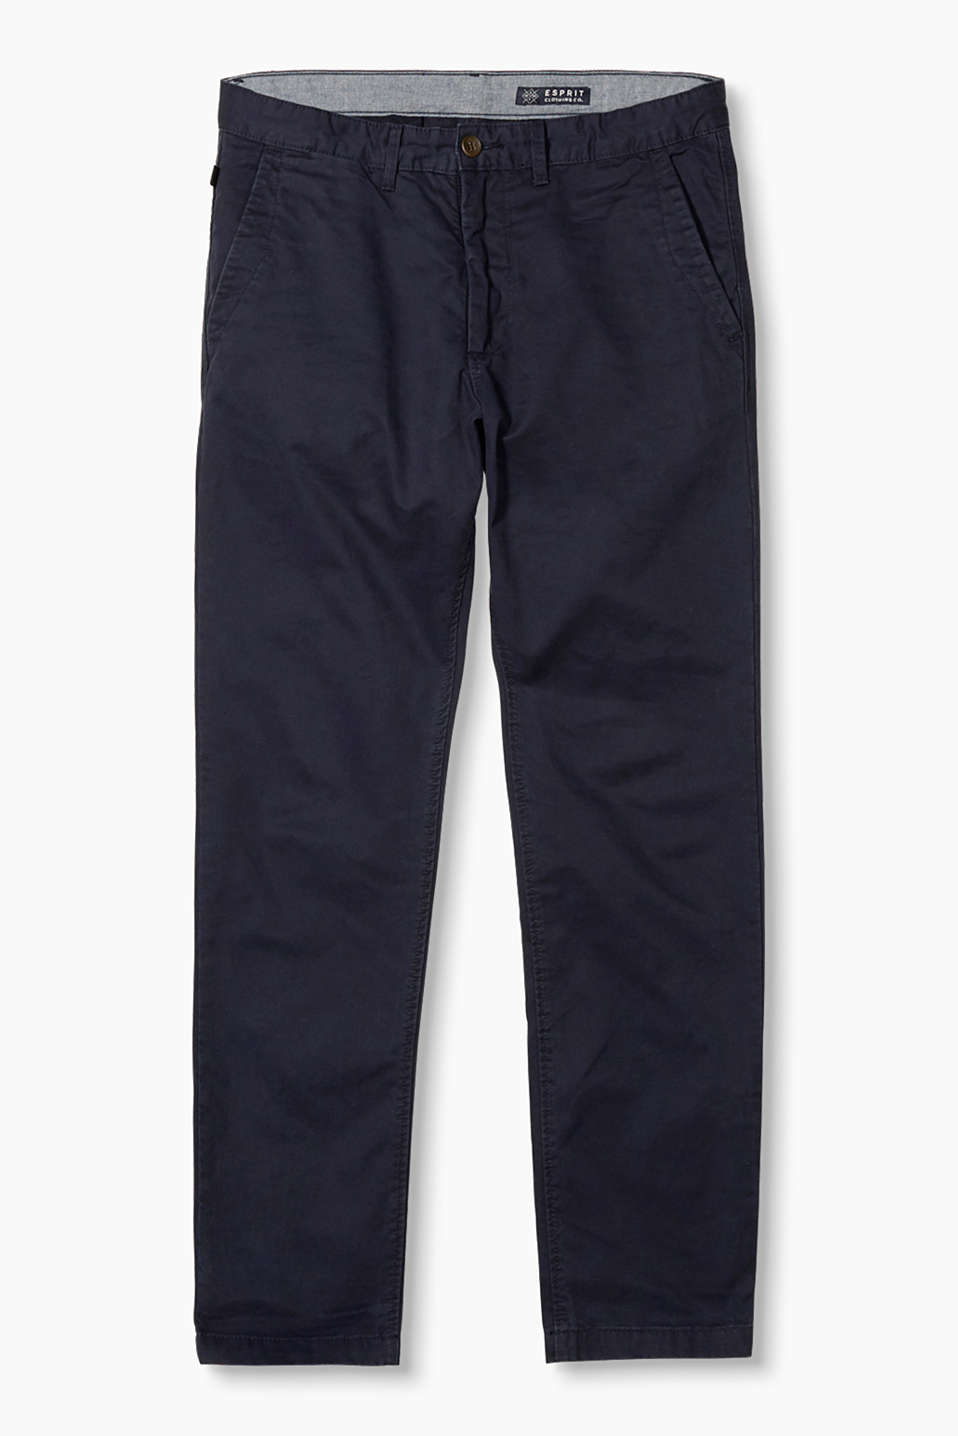 Basic-chinos i bomuldstwill med let washed out-effekt, lynlåslukning